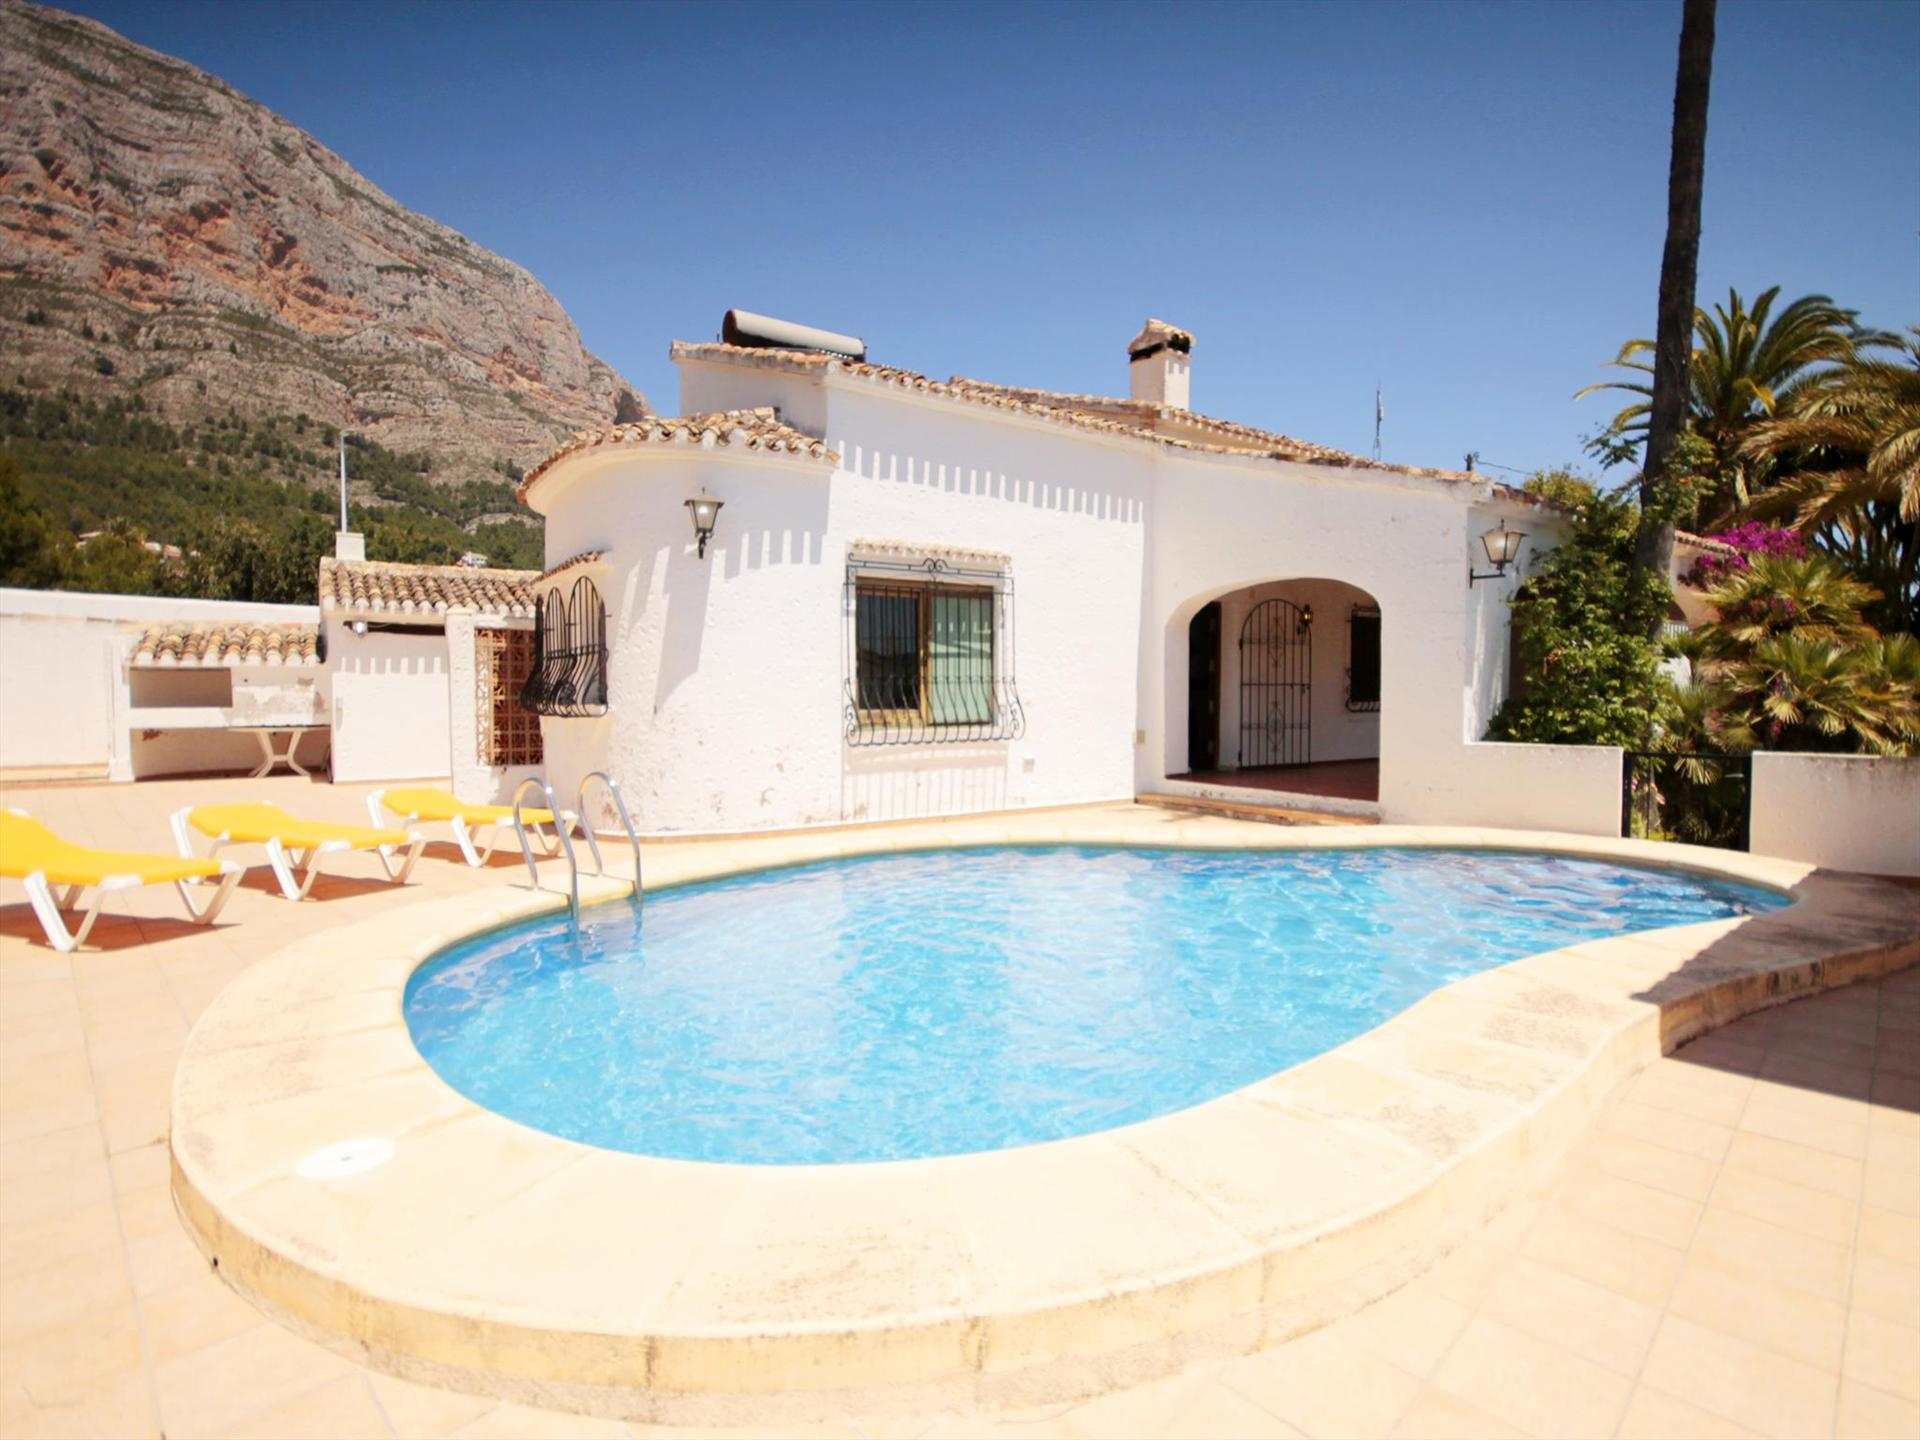 POPUL,Large and comfortable villa  with private pool in Javea, on the Costa Blanca, Spain for 8 persons.....